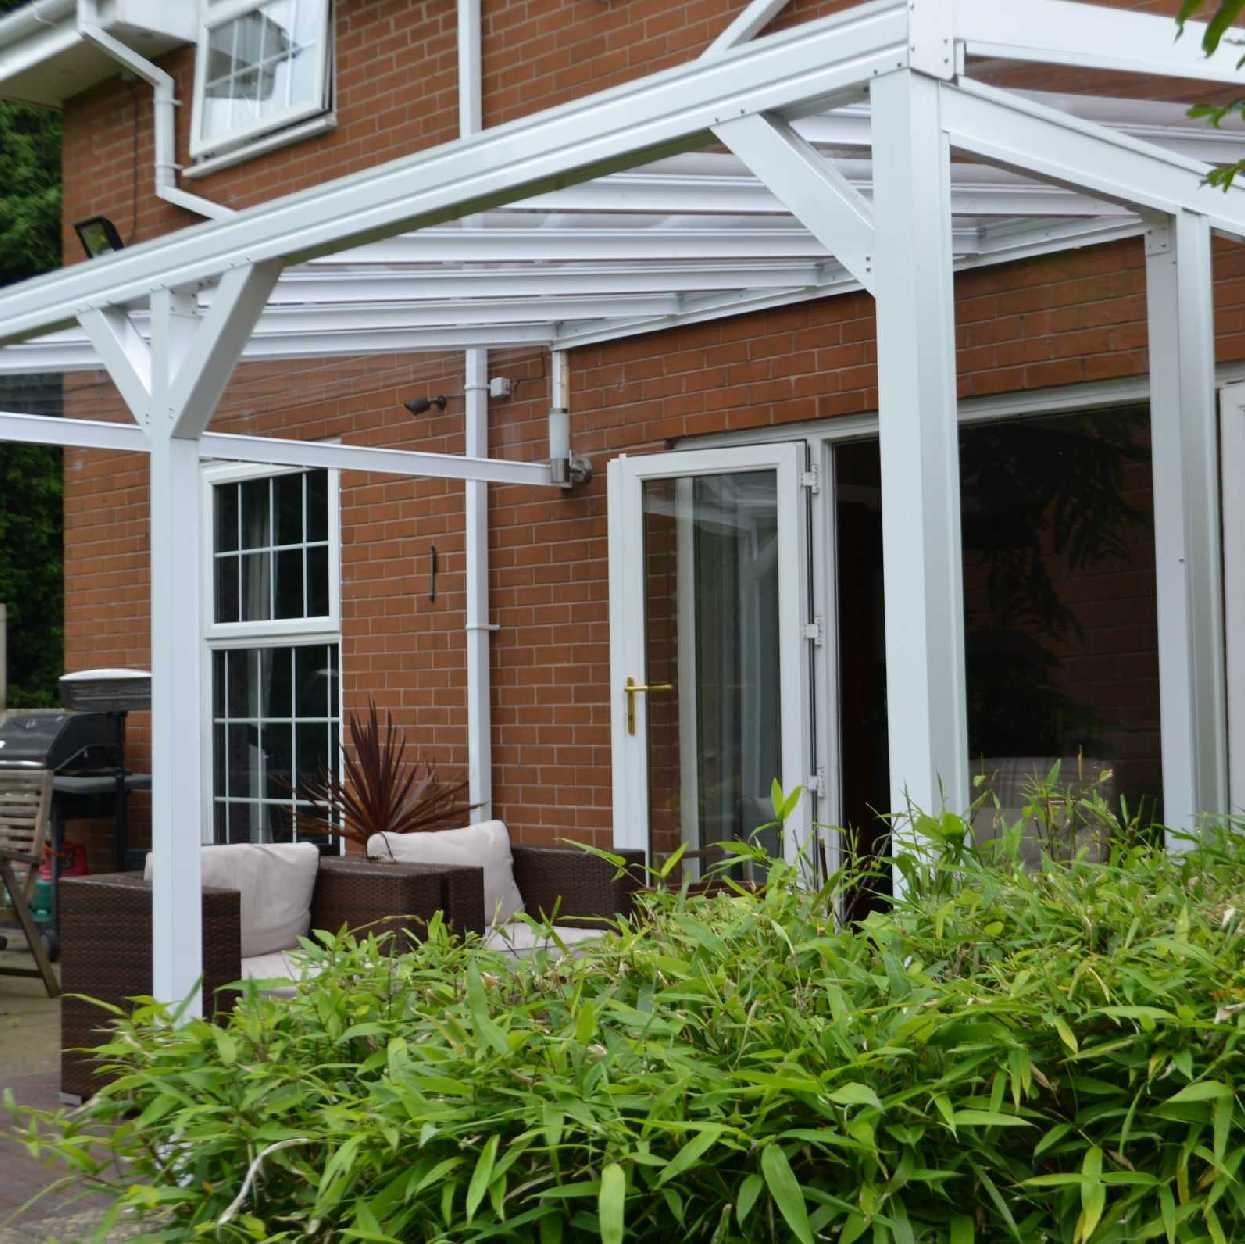 Omega Smart Lean-To Canopy with 6mm Glass Clear Plate Polycarbonate Glazing - 7.7m (W) x 2.5m (P), (4) Supporting Posts from Omega Build